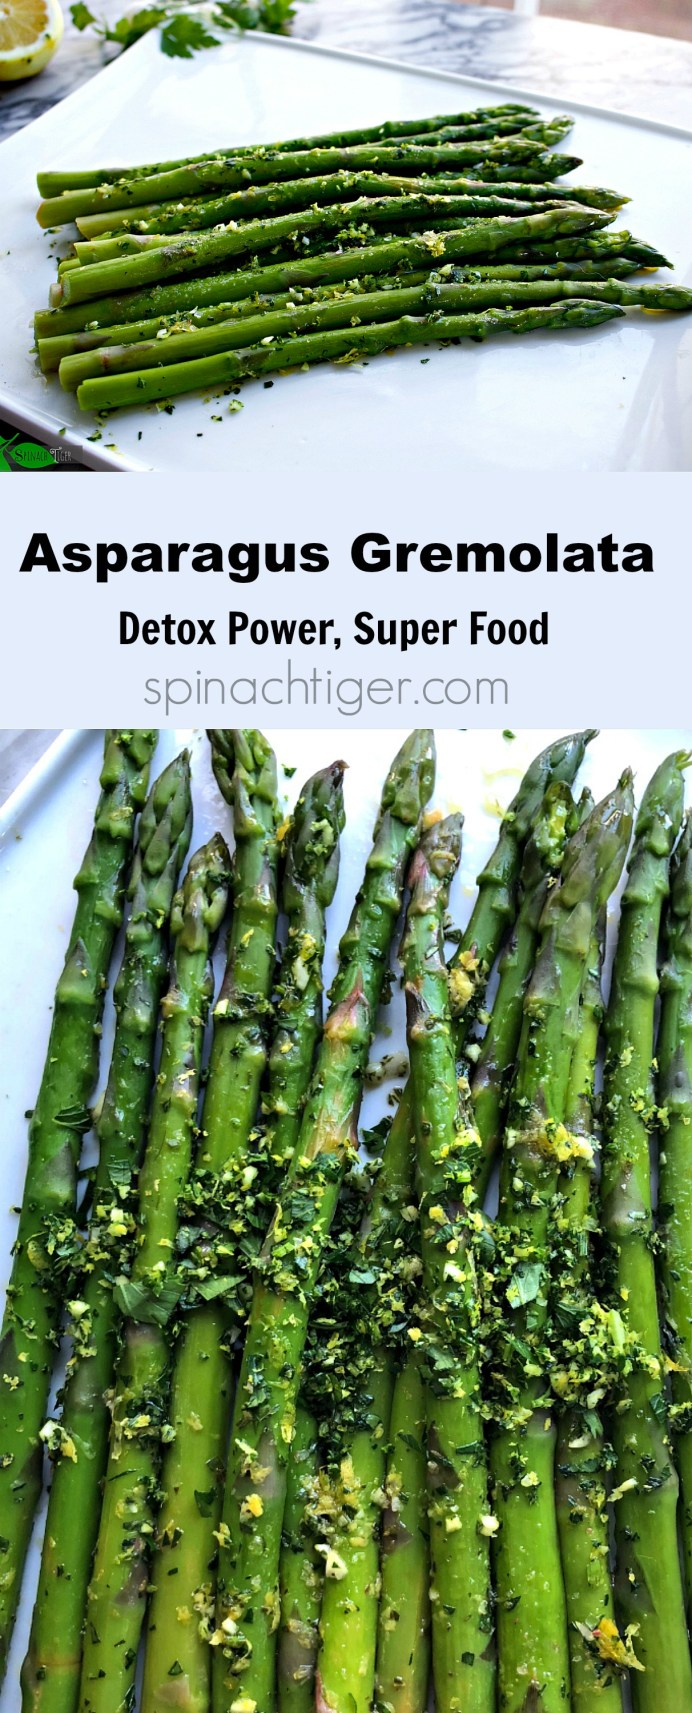 Asparagus Gremolata, Benefits of Asparagus, Detox Superfood, from Spinach Tiger